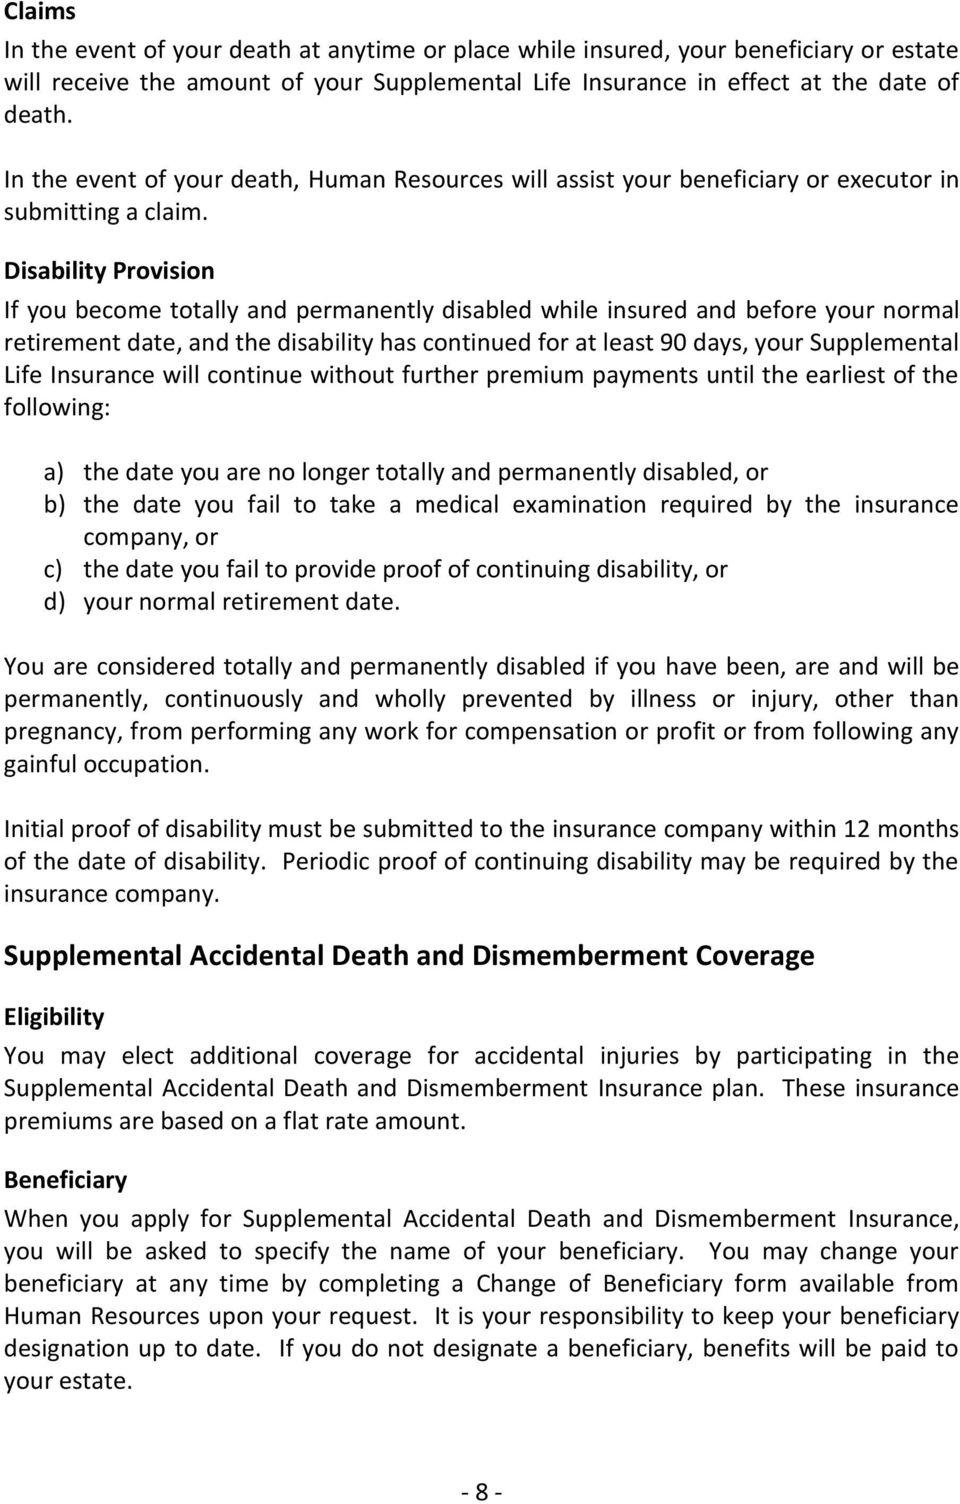 Disability Provision If you become totally and permanently disabled while insured and before your normal retirement date, and the disability has continued for at least 90 days, your Supplemental Life